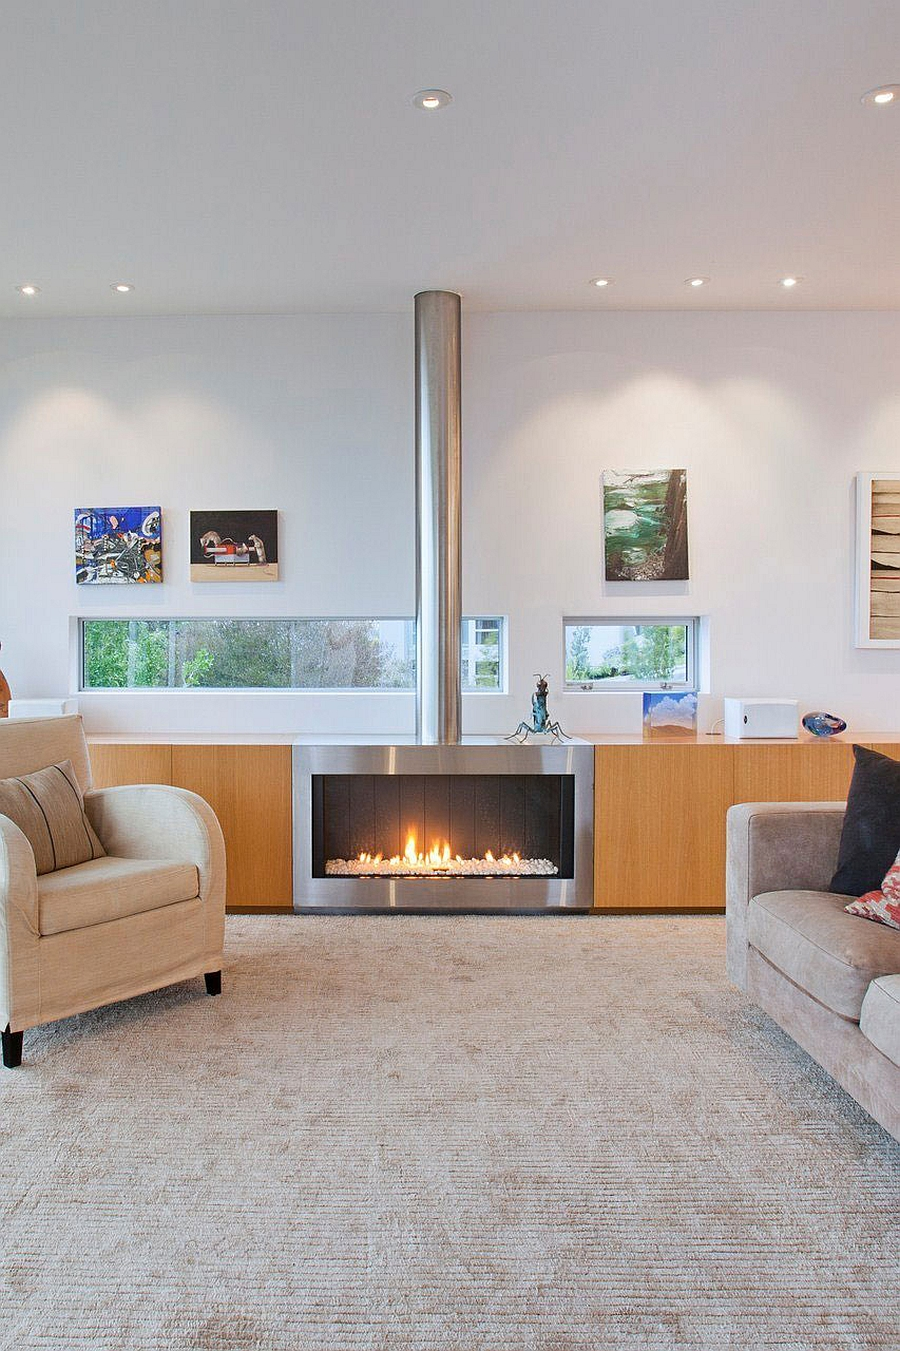 Sleek, modern fireplace design